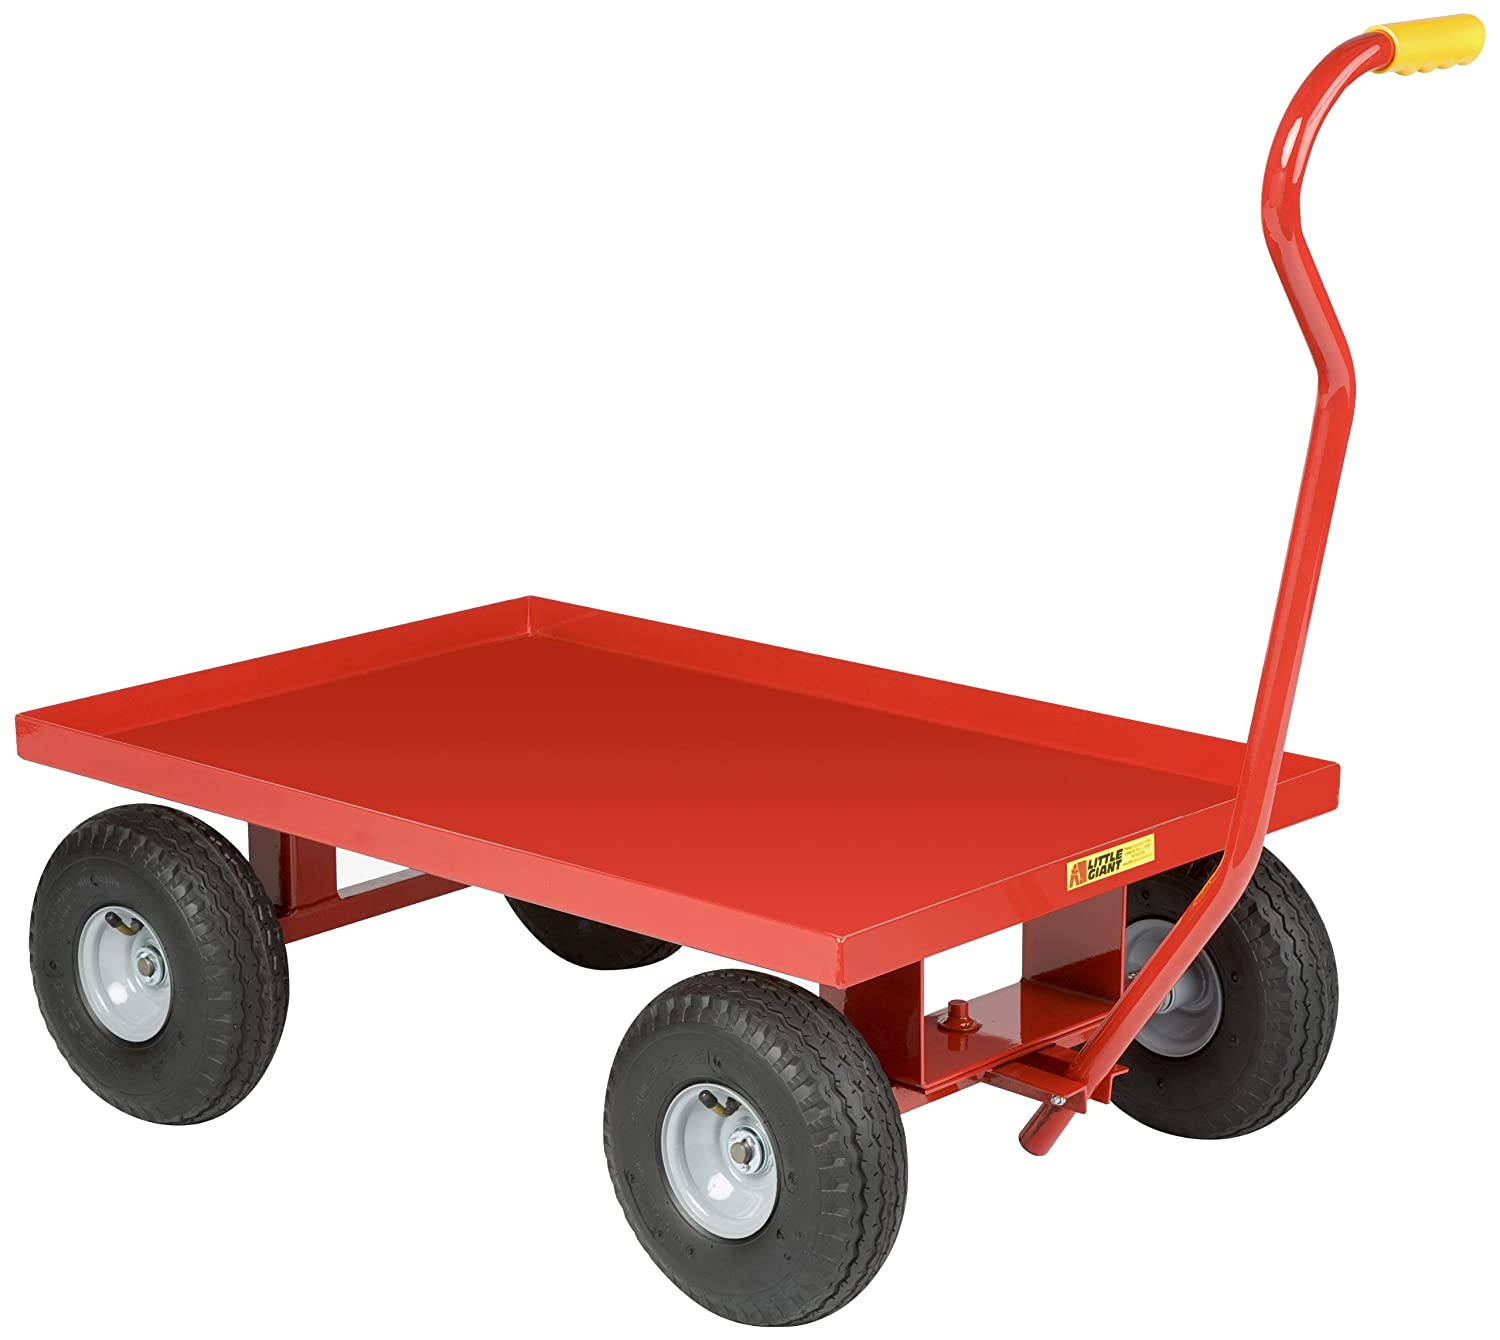 Little Giant LW-2436-8S Steel Solid Deck Wagon Truck with 1-1 2 Lip, 8 Solid Rubber Wheel, Red, 1200 lb. Load Capacity, 24 Width x 36 Length